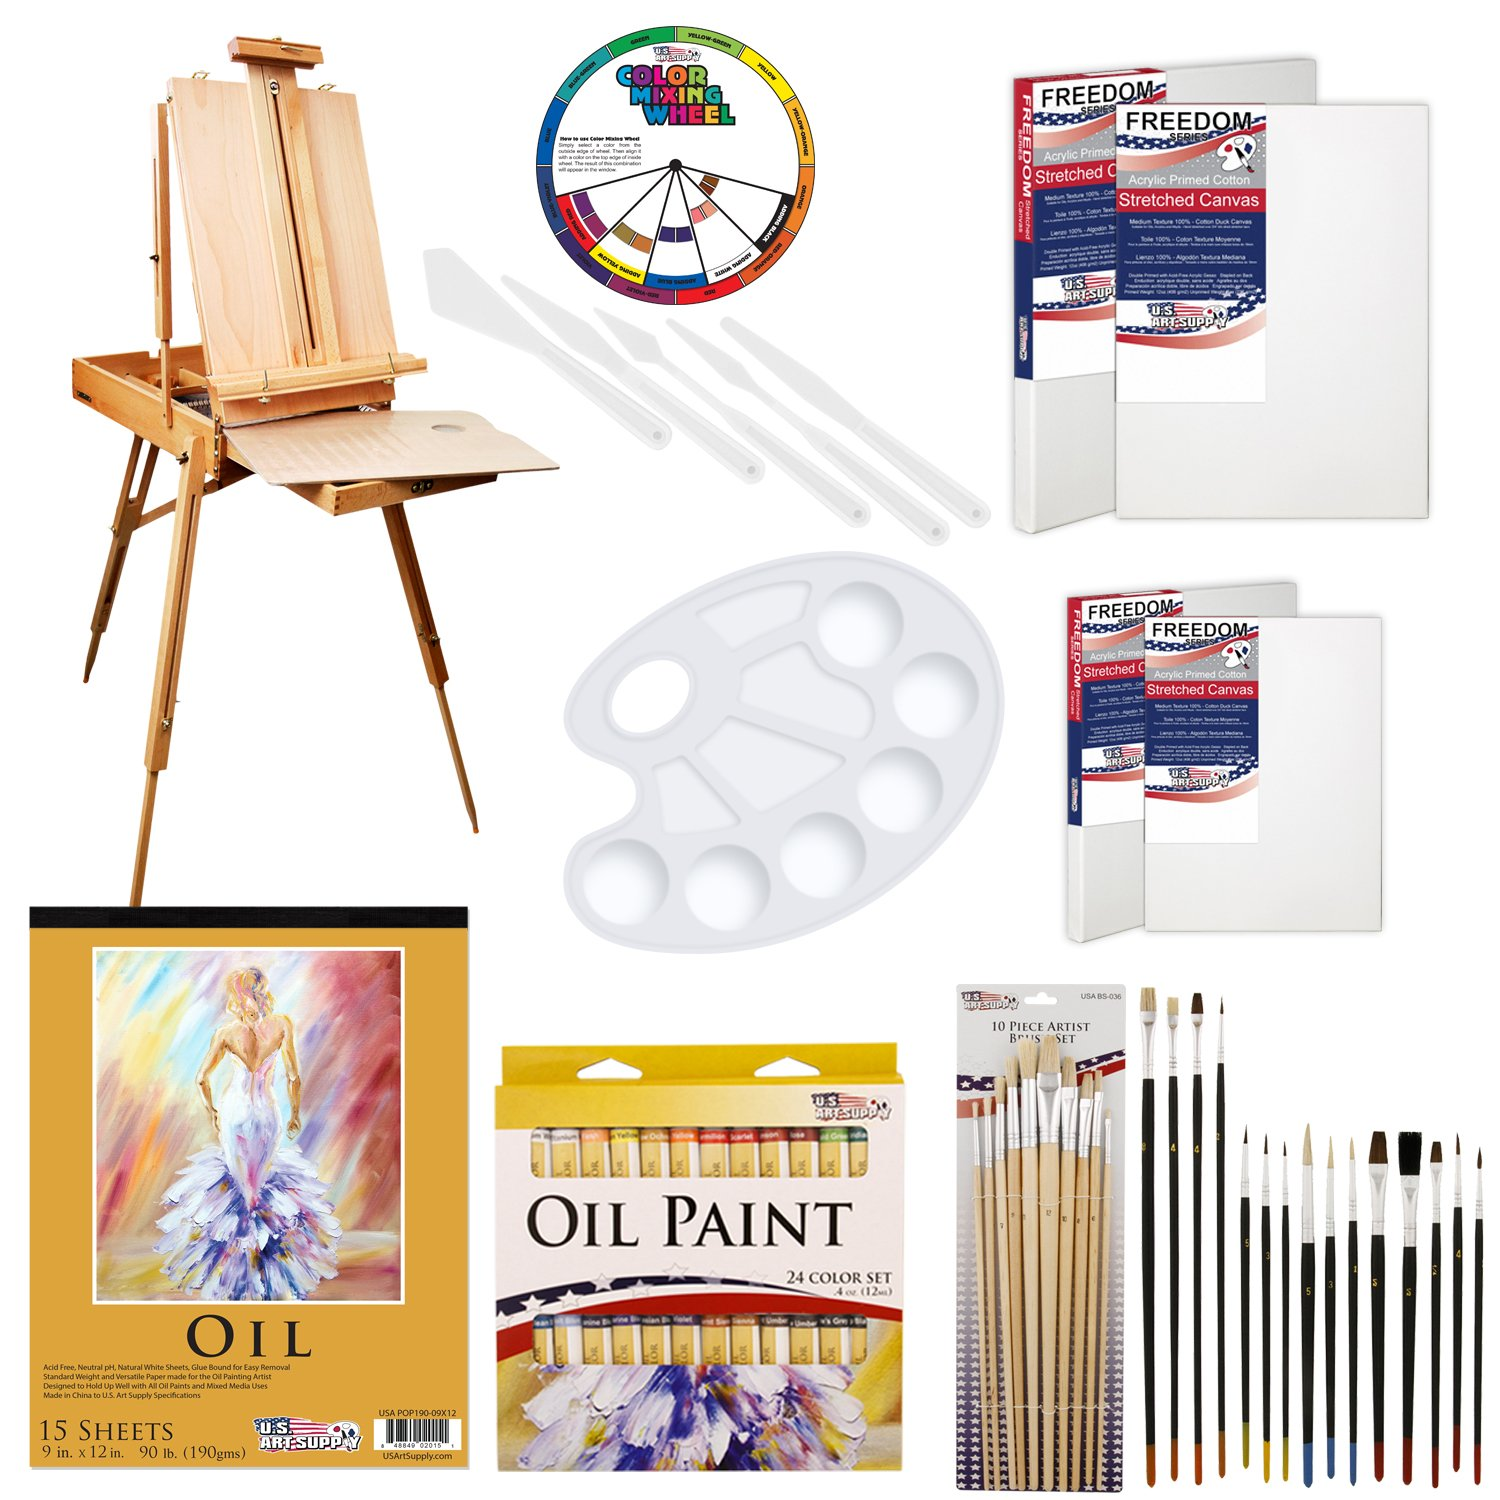 U.S. Art Supply 62 Piece Oil Artist Painting Kit with Wood French Easel, 24 Oil Paint Colors, 2-16''x20'' & 2-11''x14'' Stretched Canvases, 25 - Paint Brushes, Palette Knife Set, 10-Well Palette